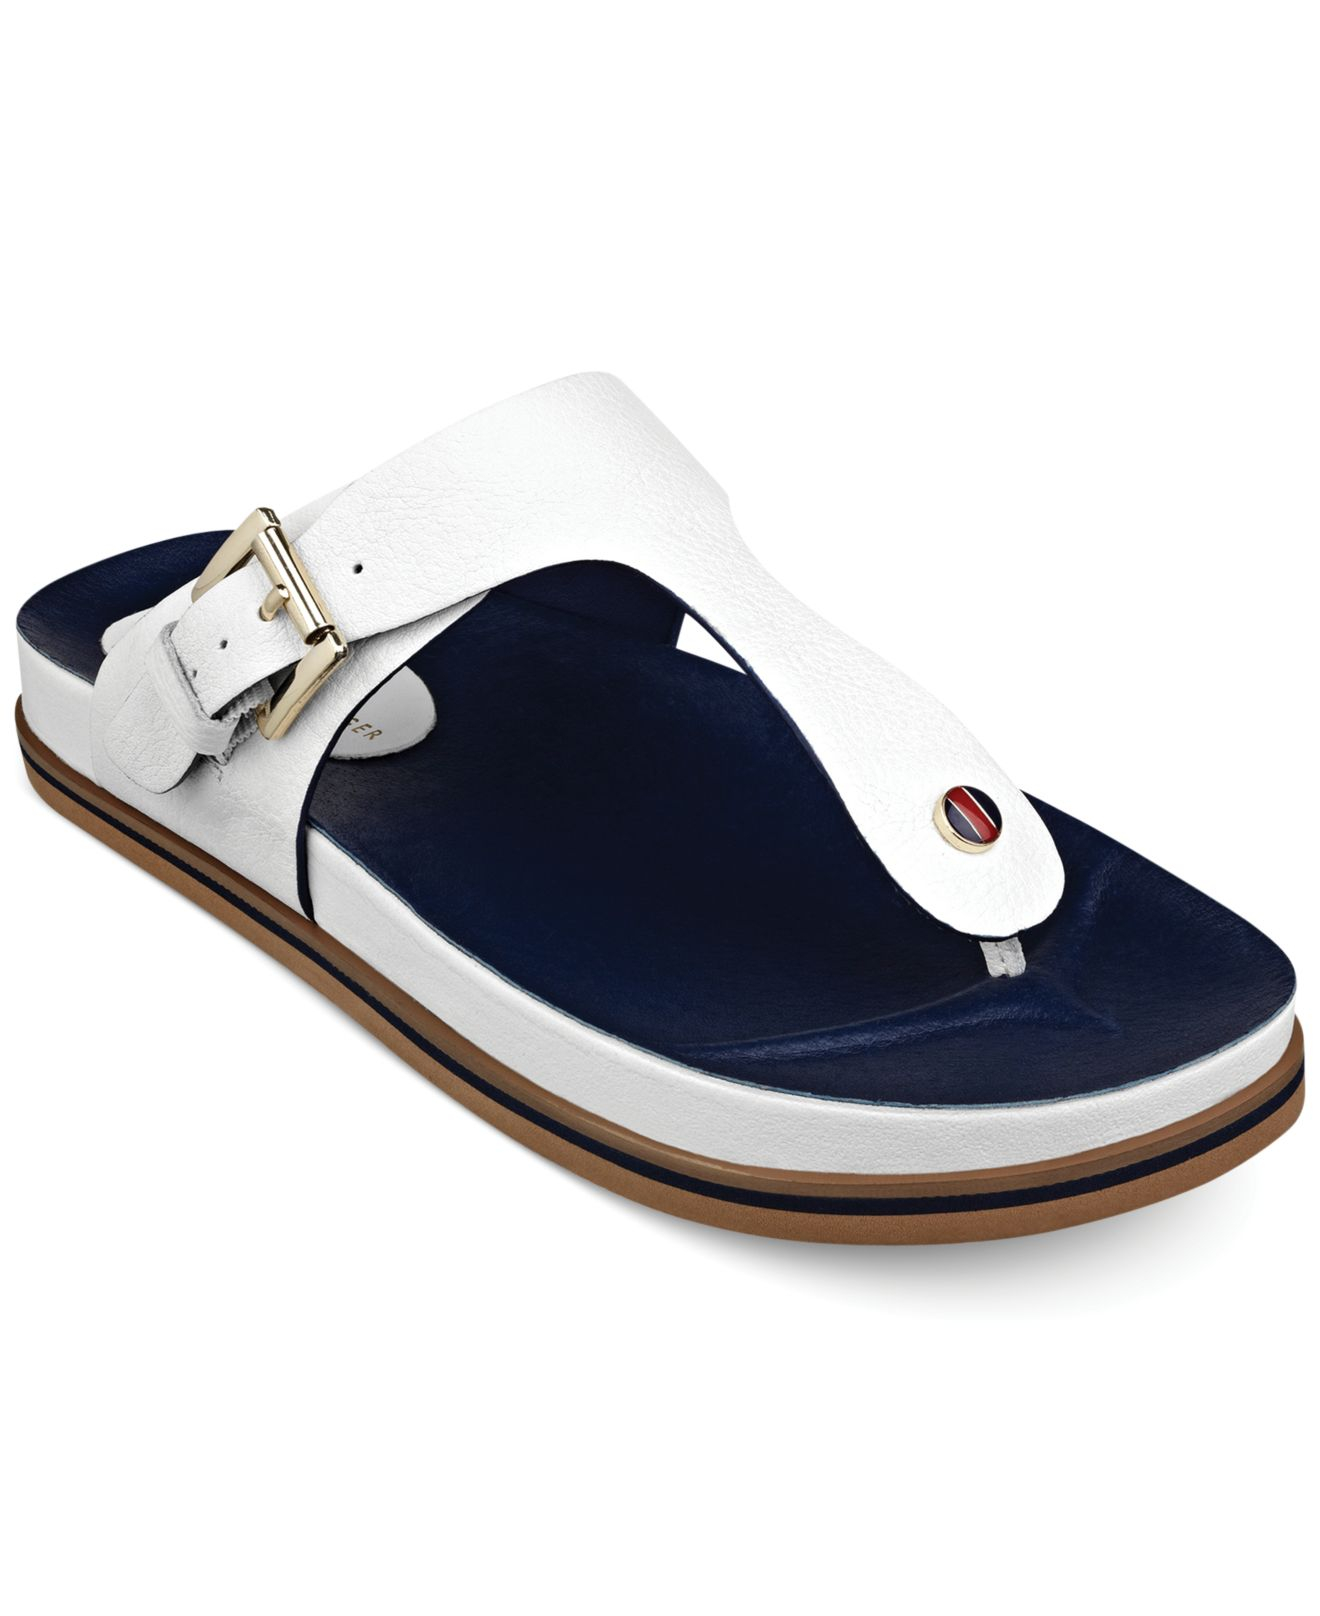 92895f25362a Lyst - Tommy Hilfiger Womens Forest Footbed Thong Sandals in White